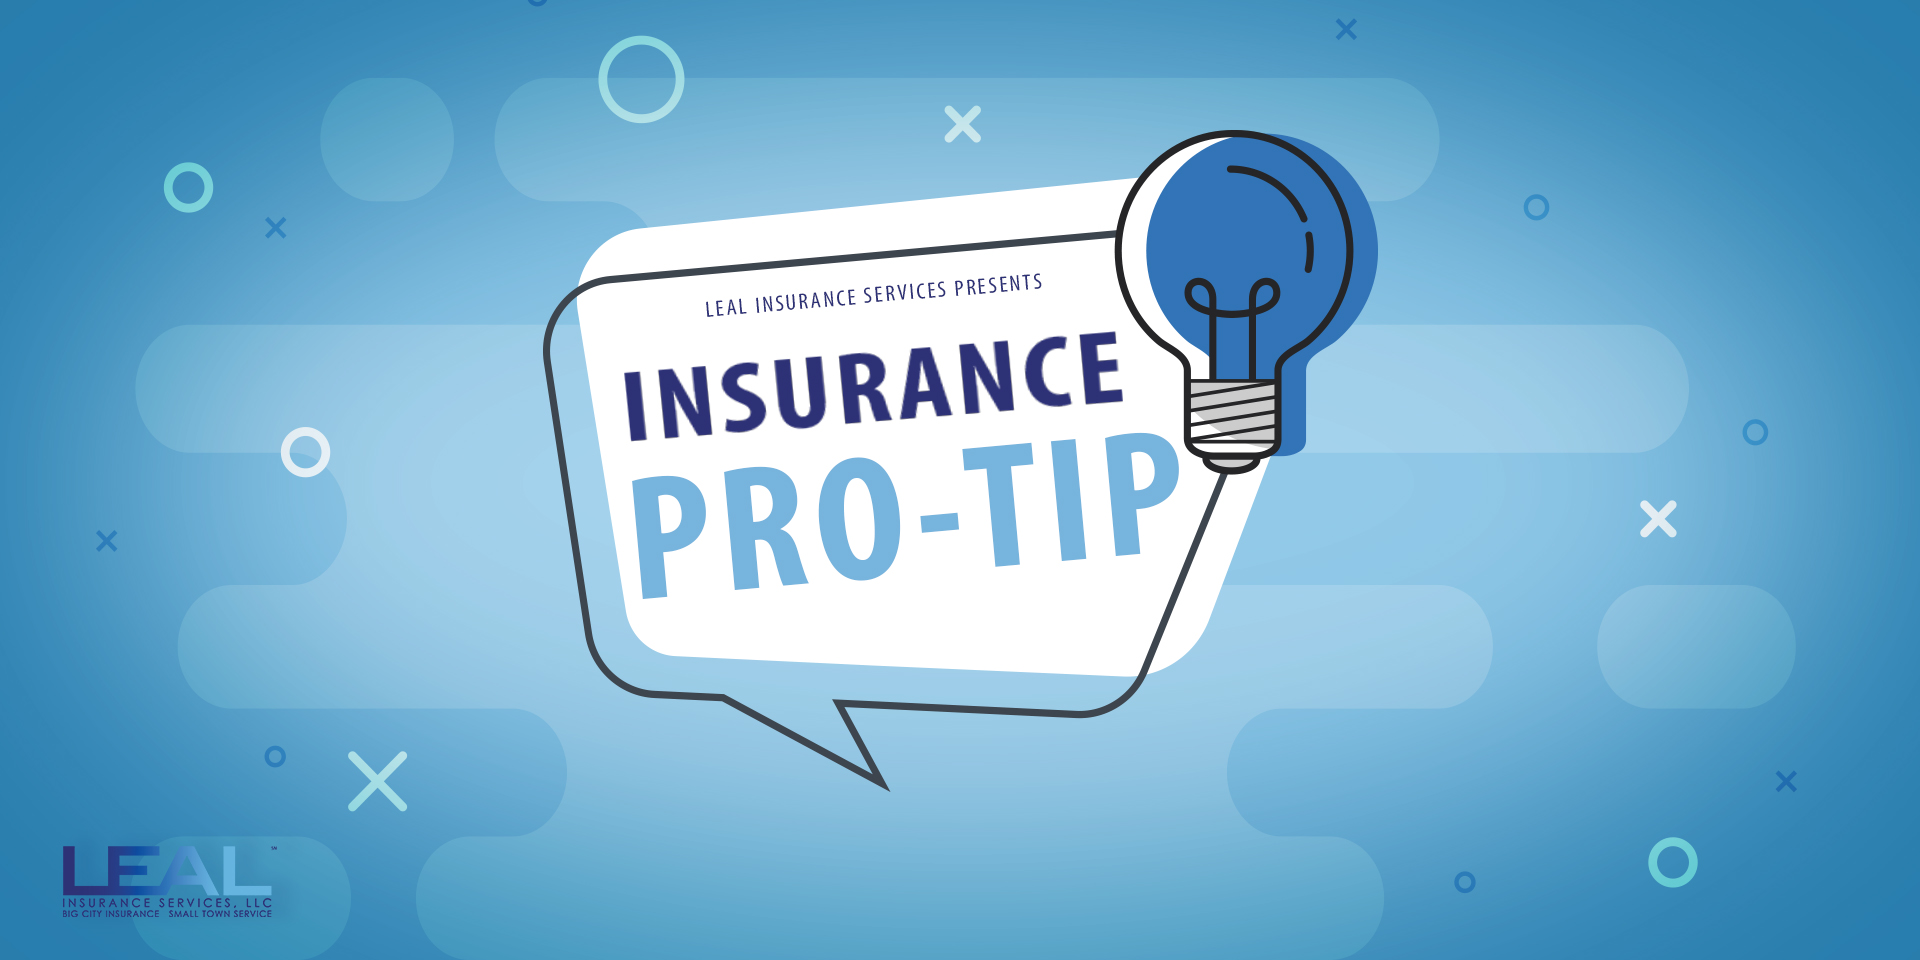 Insurance Pro Tip Small Business Owners COVID-19 Relief